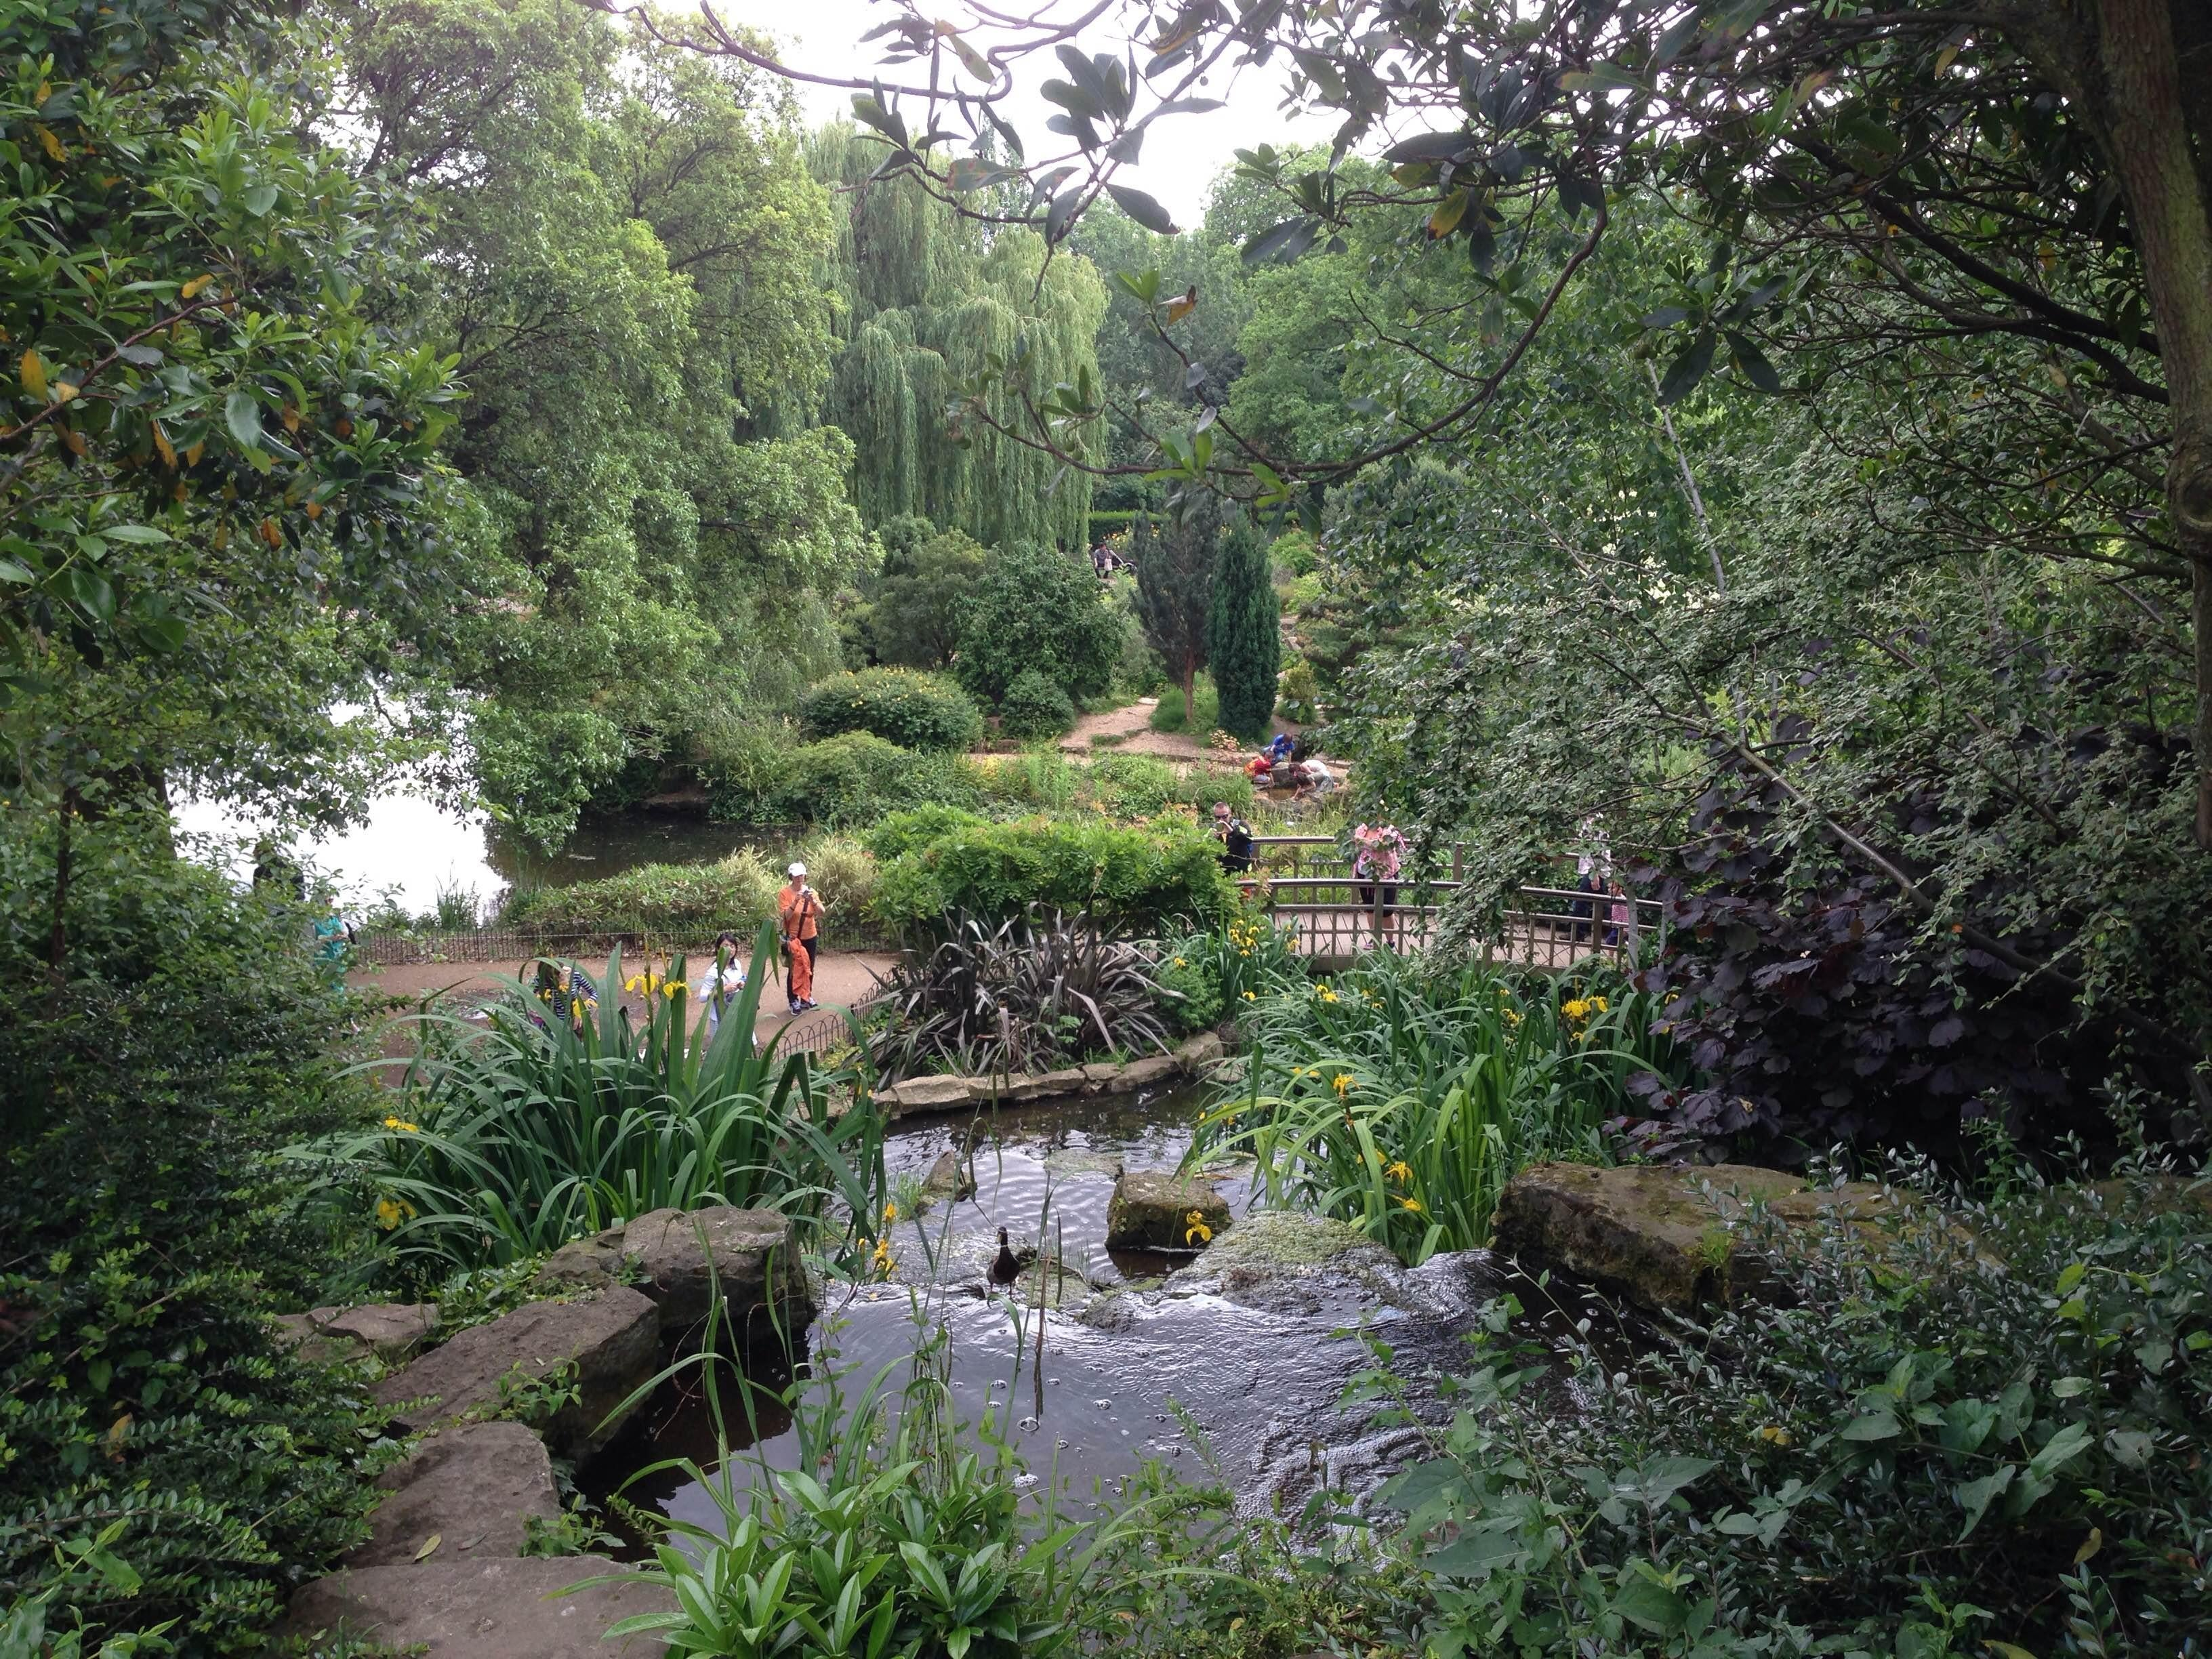 Selva en Queen Mary's Gardens